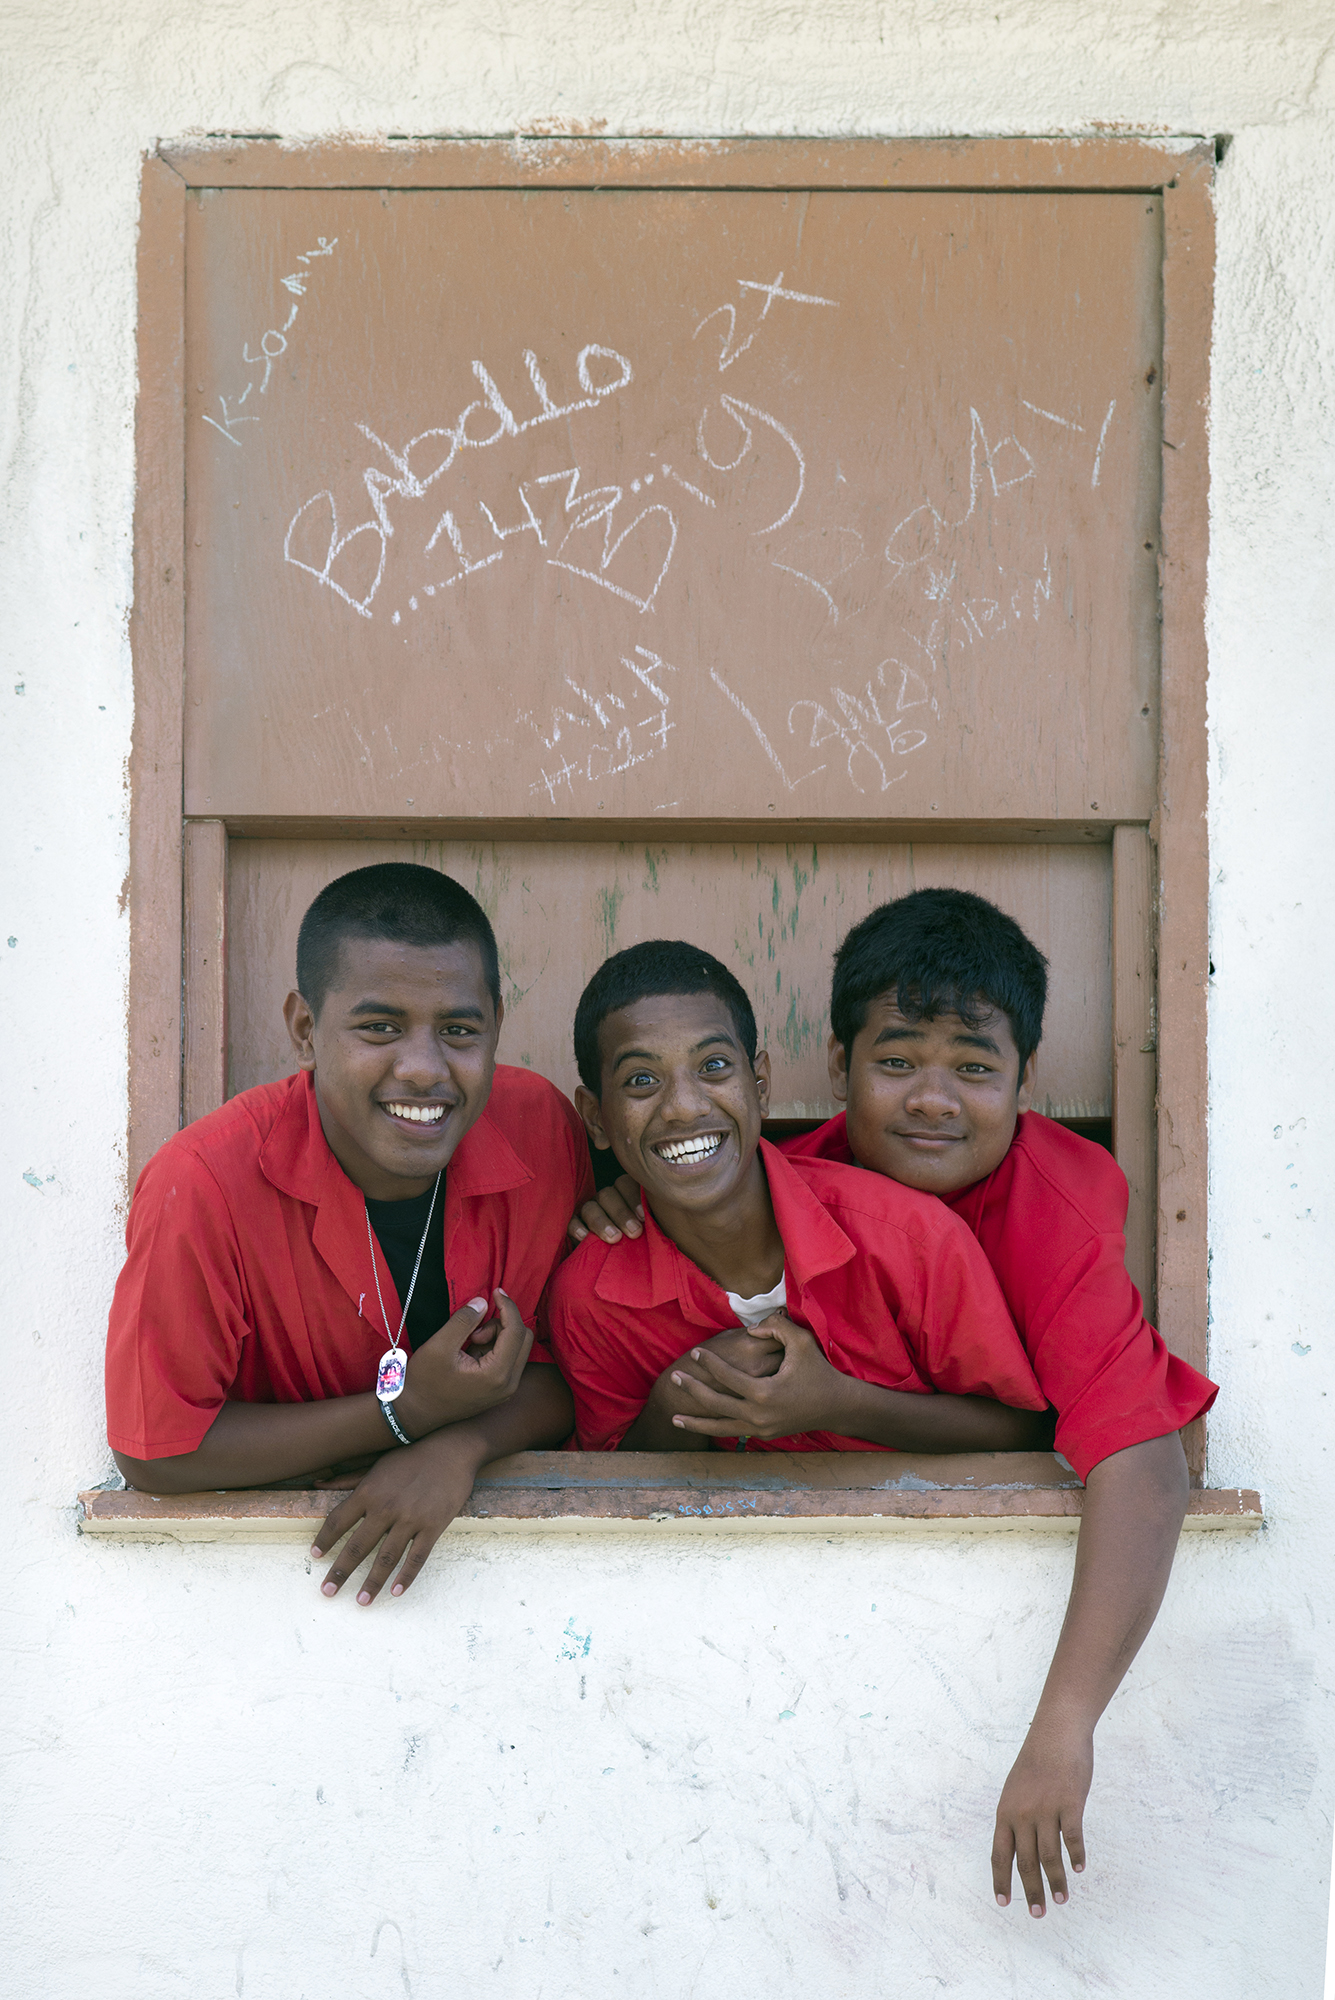 <p>Most schools require uniforms, and these boys on Ebeye are no exception. Photo by Mark Edward Harris.</p>